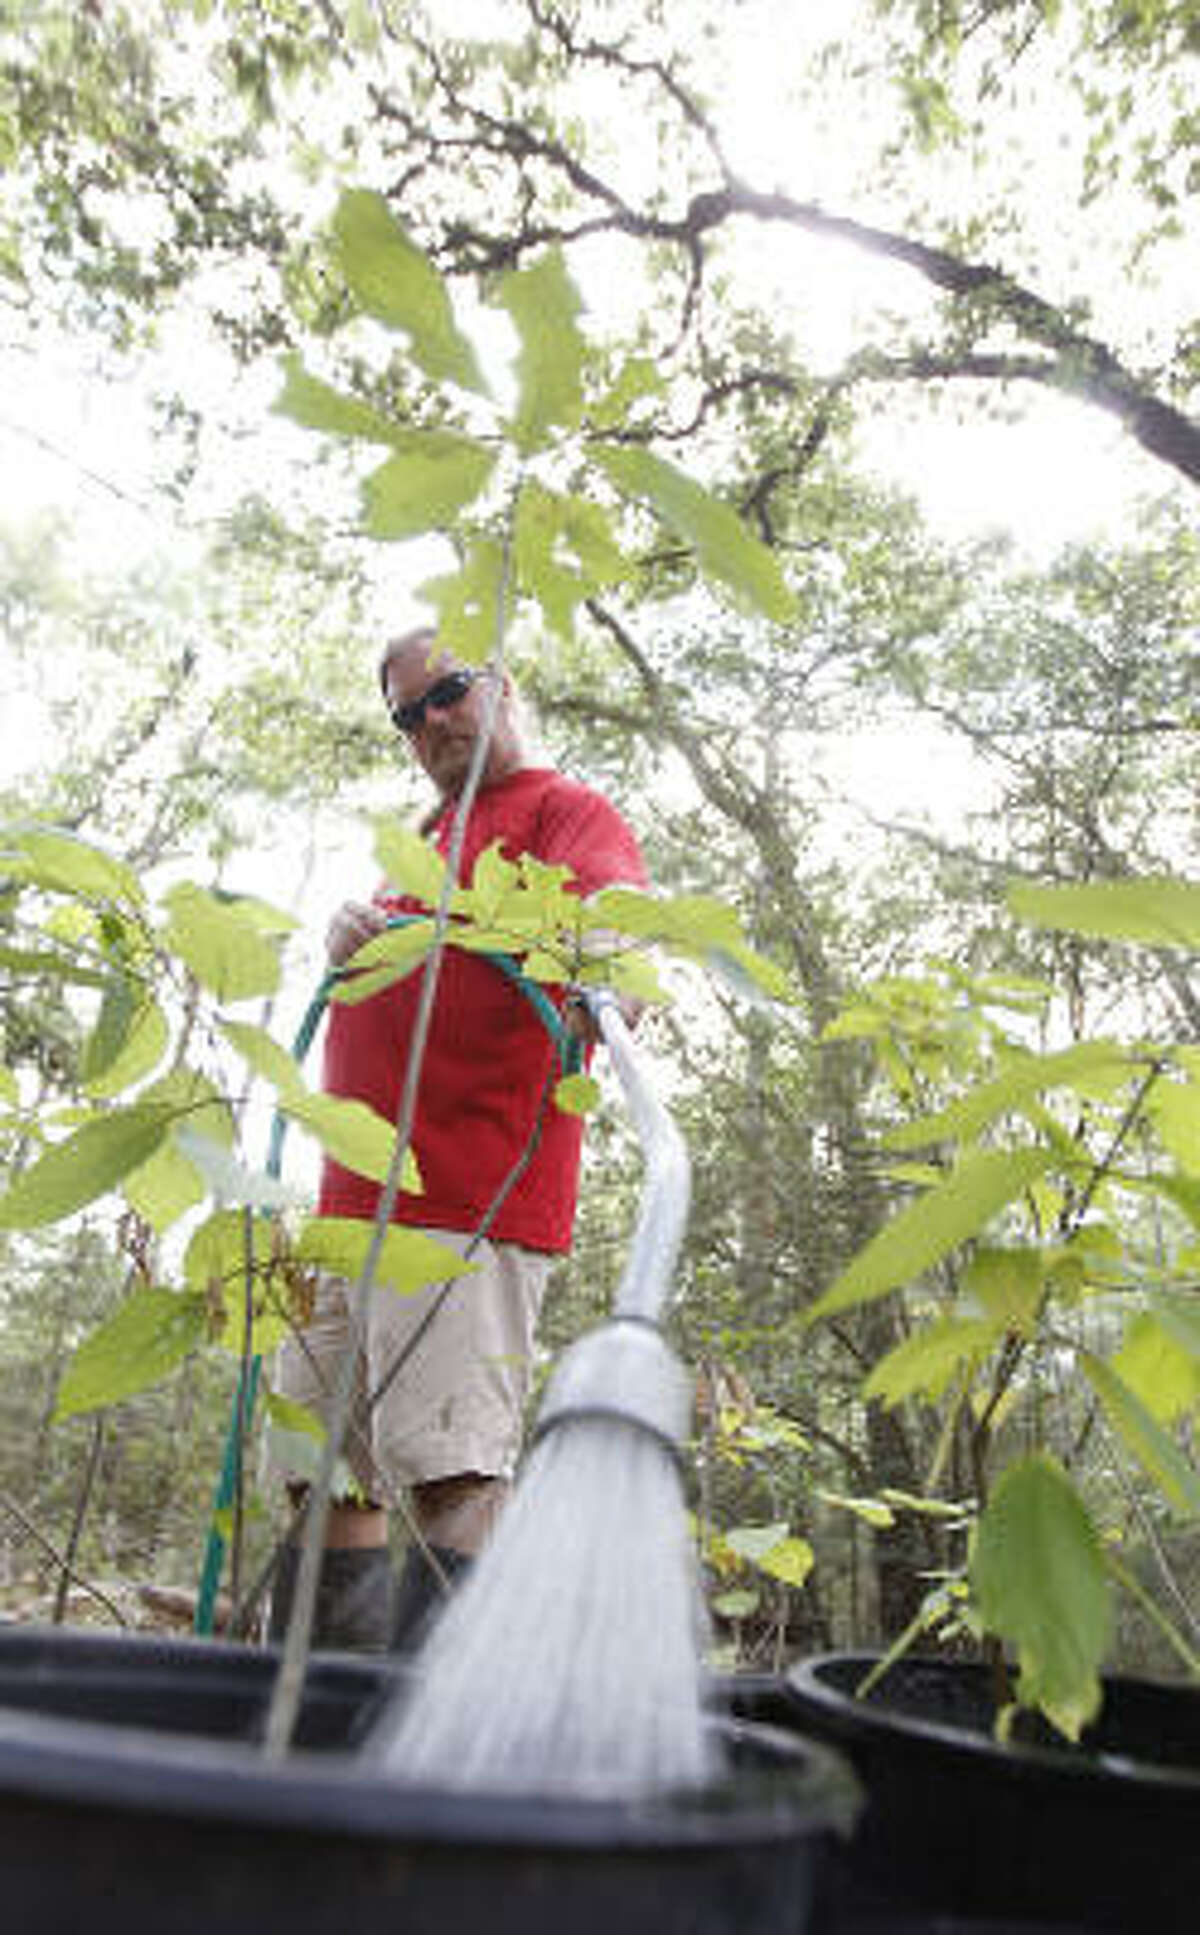 Jim Crabb, facilities manager for the Houston Arboretum and Nature Center, waters baby trees in pots with a hand held sprinkler system as he tends to the thirsty trees at the Arboretum, on Tuesday in Houston. Trees require dozens of gallons of water each week to remain healthy.